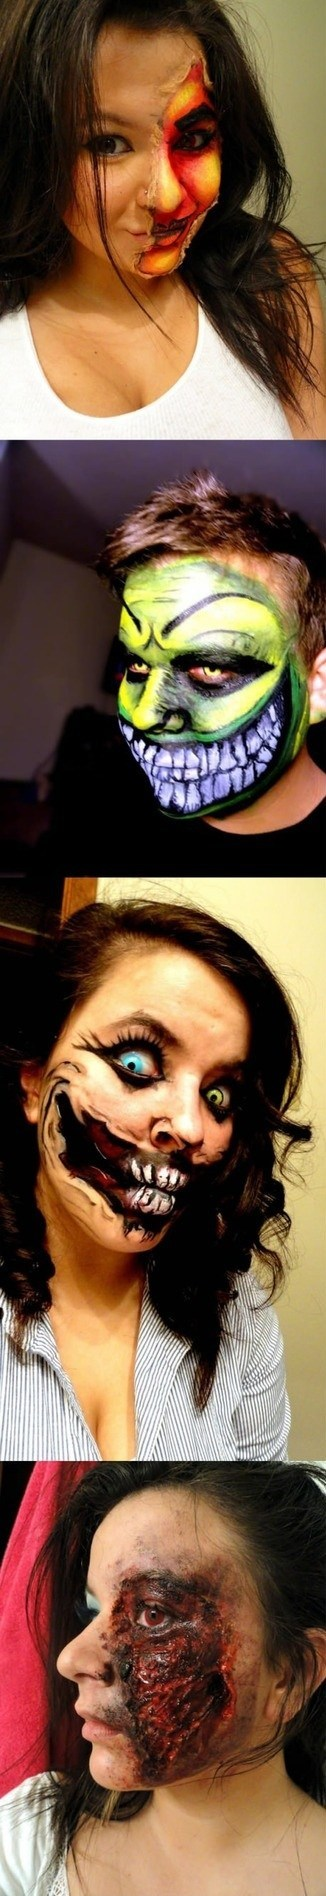 It's Amazing What You Can Do With a Little Face Paint